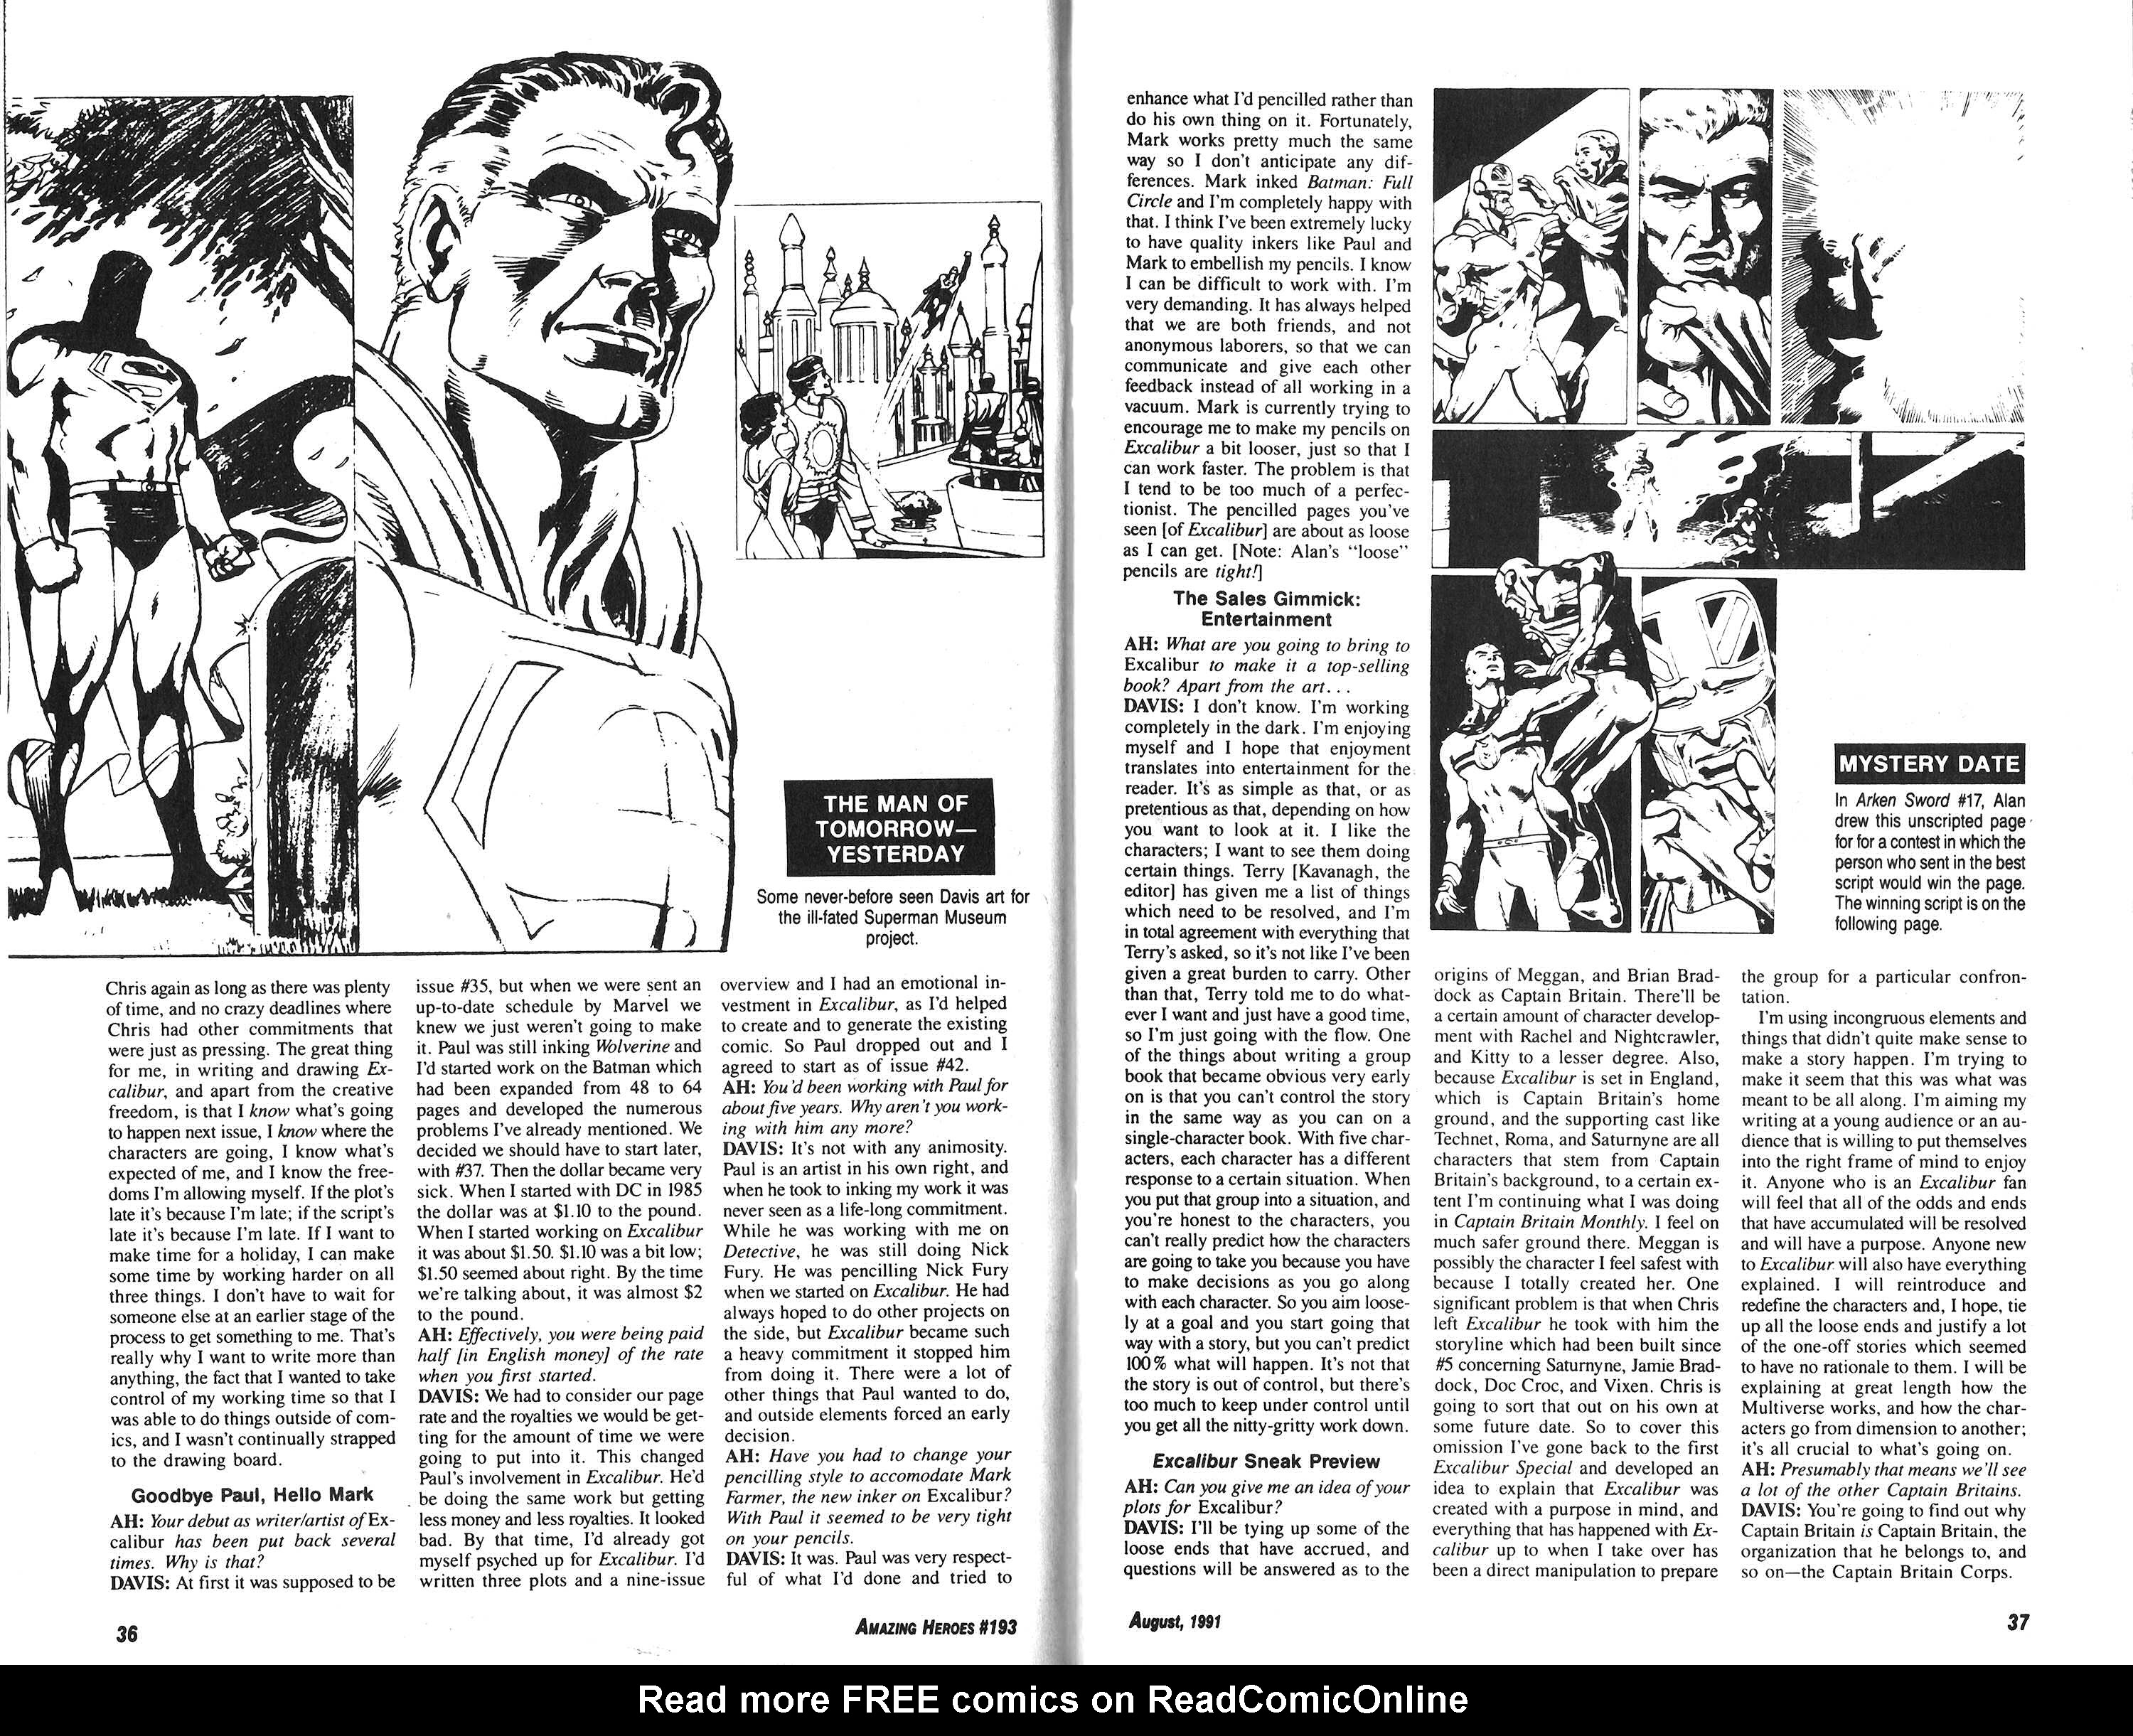 Read online Amazing Heroes comic -  Issue #193 - 19